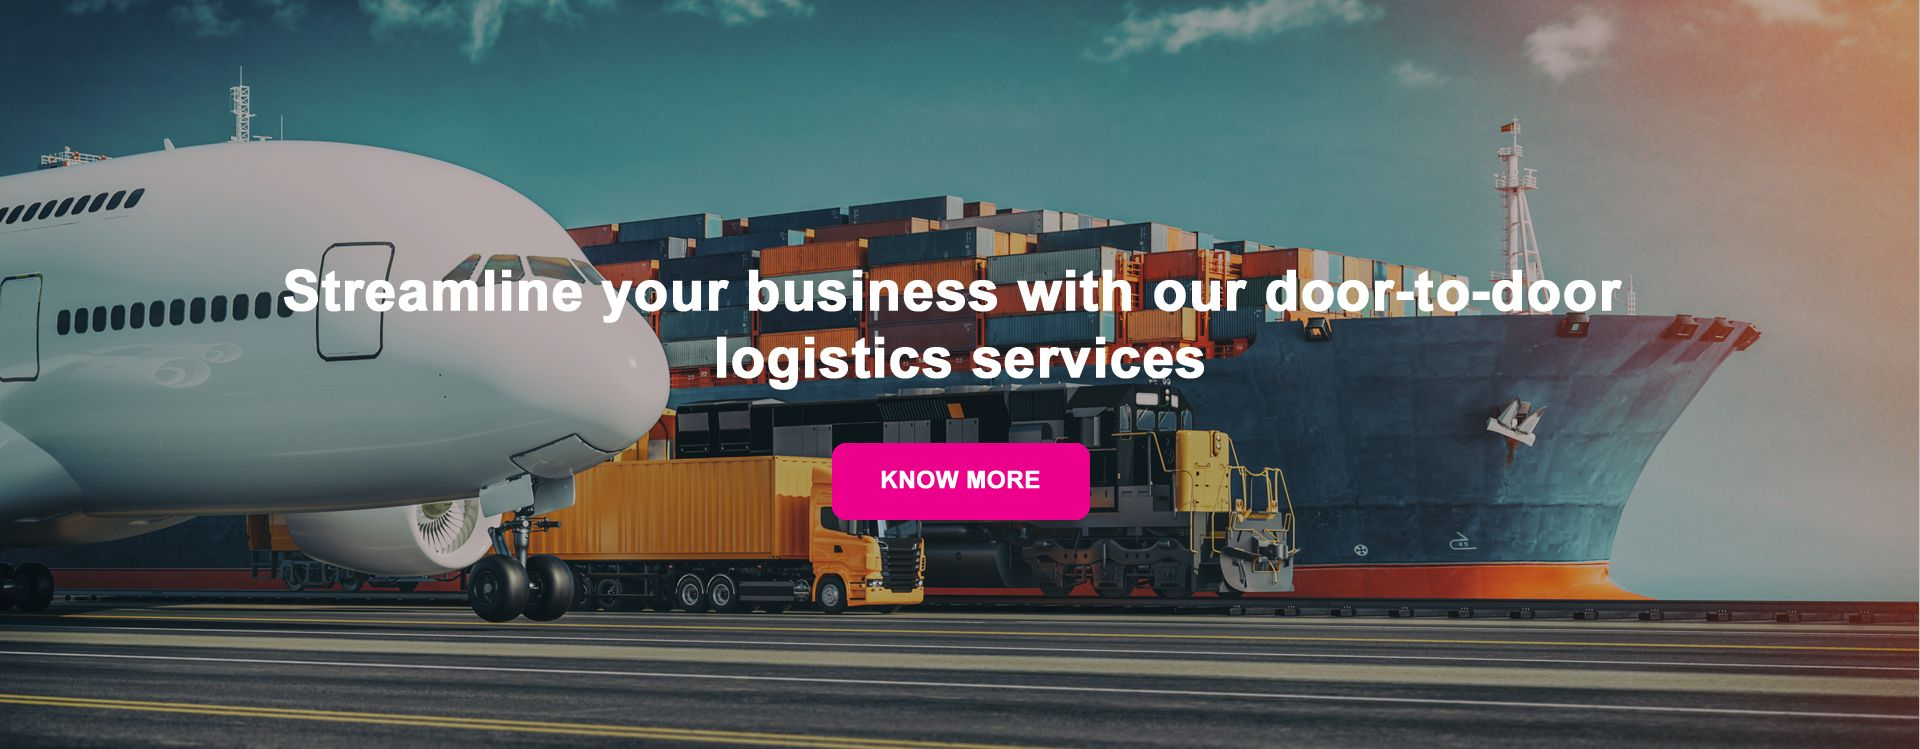 Steamline your business with our door-to-door logistics services